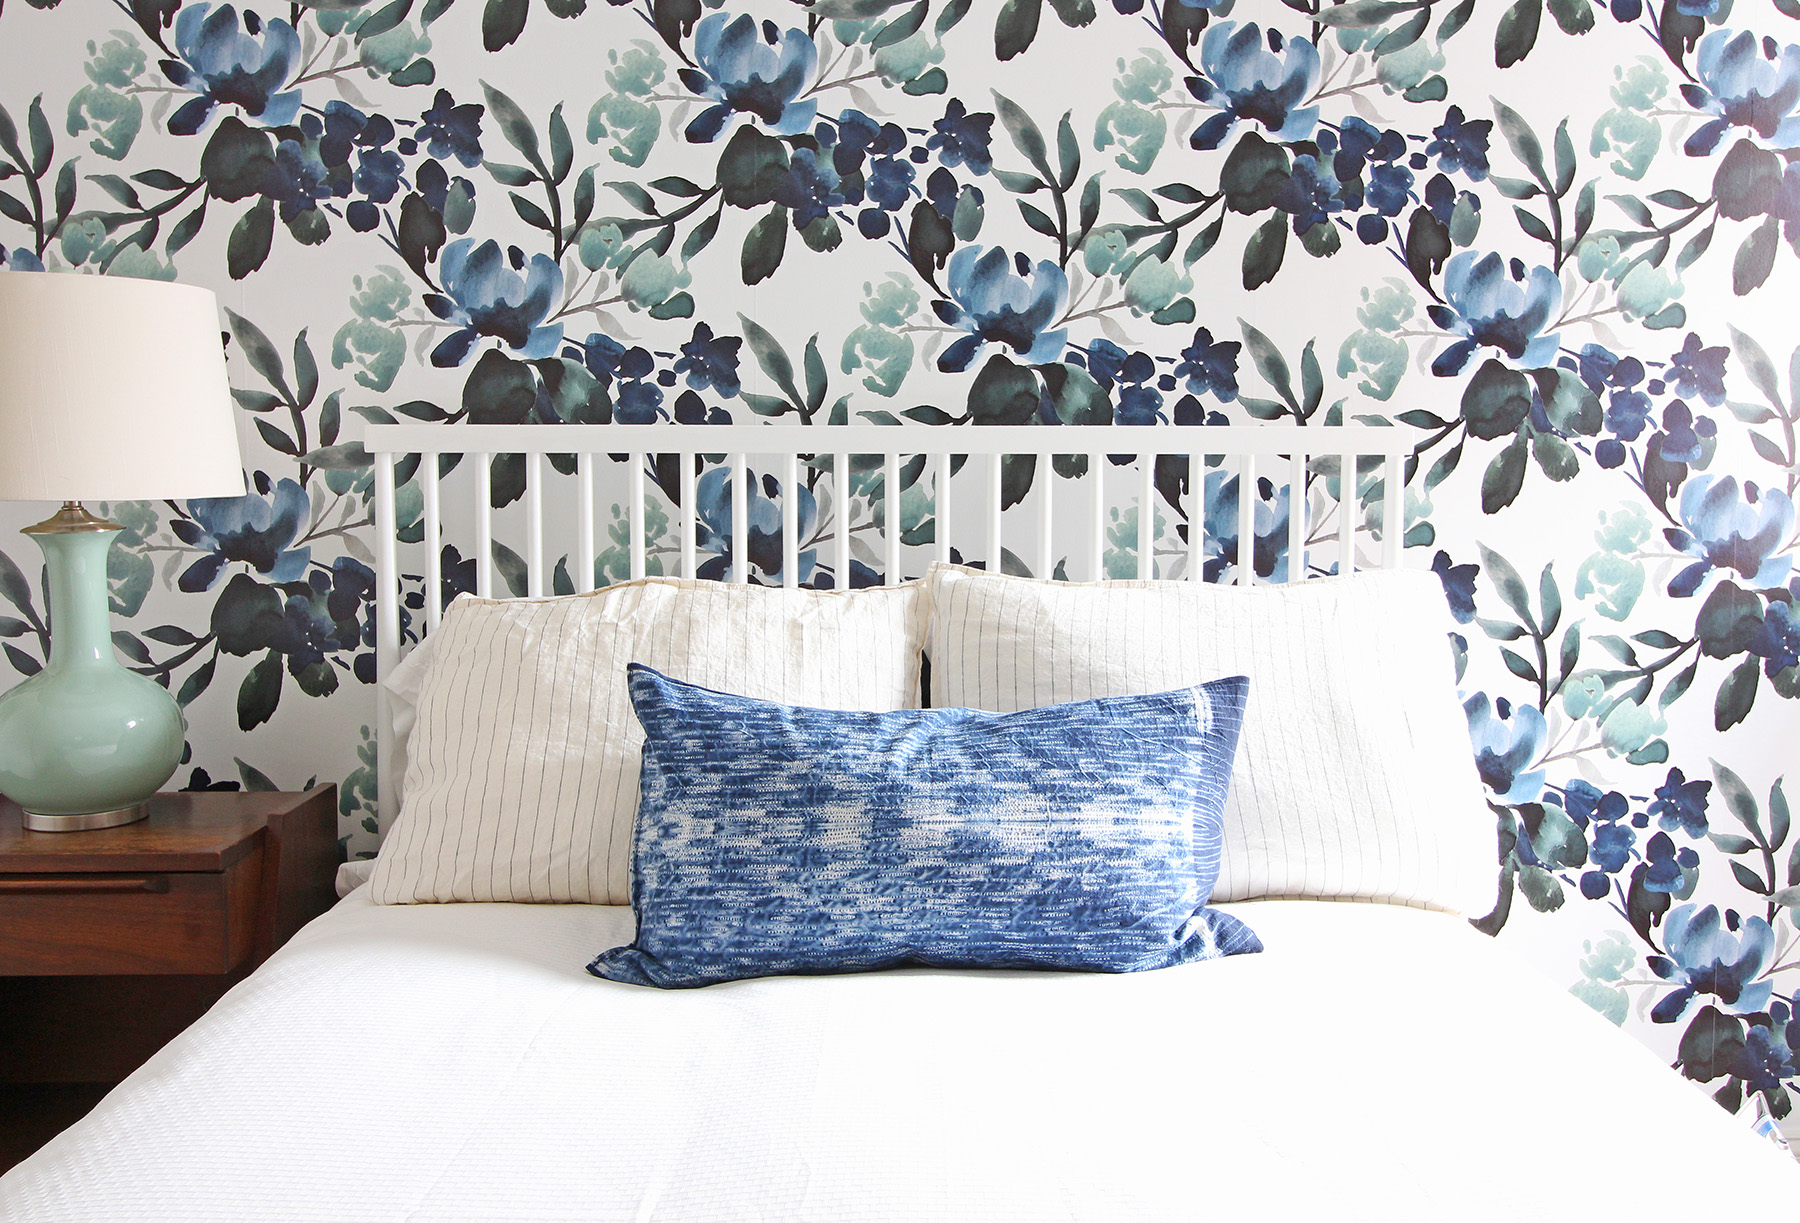 An indigo lumbar pillow is a great accent to this bold blue and green floral wallpaper in a modern farmhouse eclectic guest bedroom.